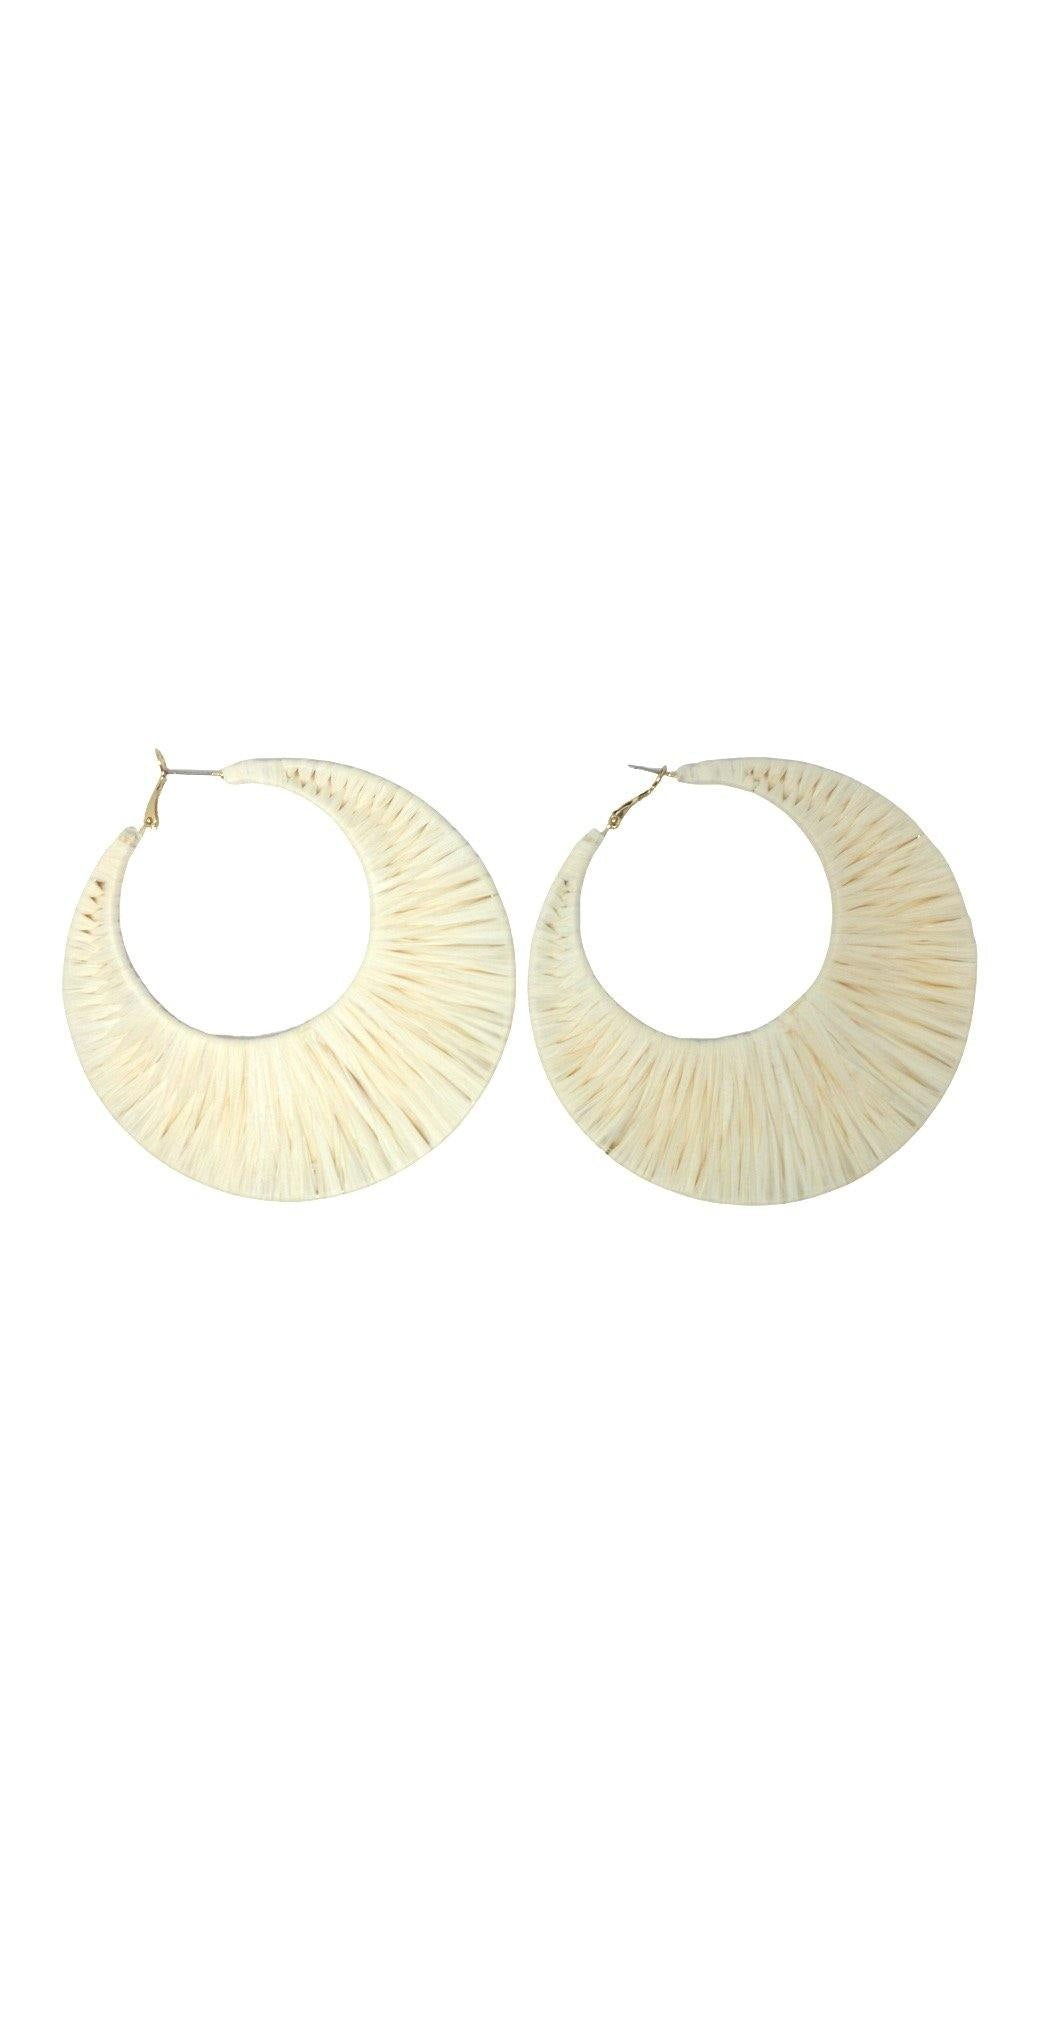 Large Ivory Circle Earrings